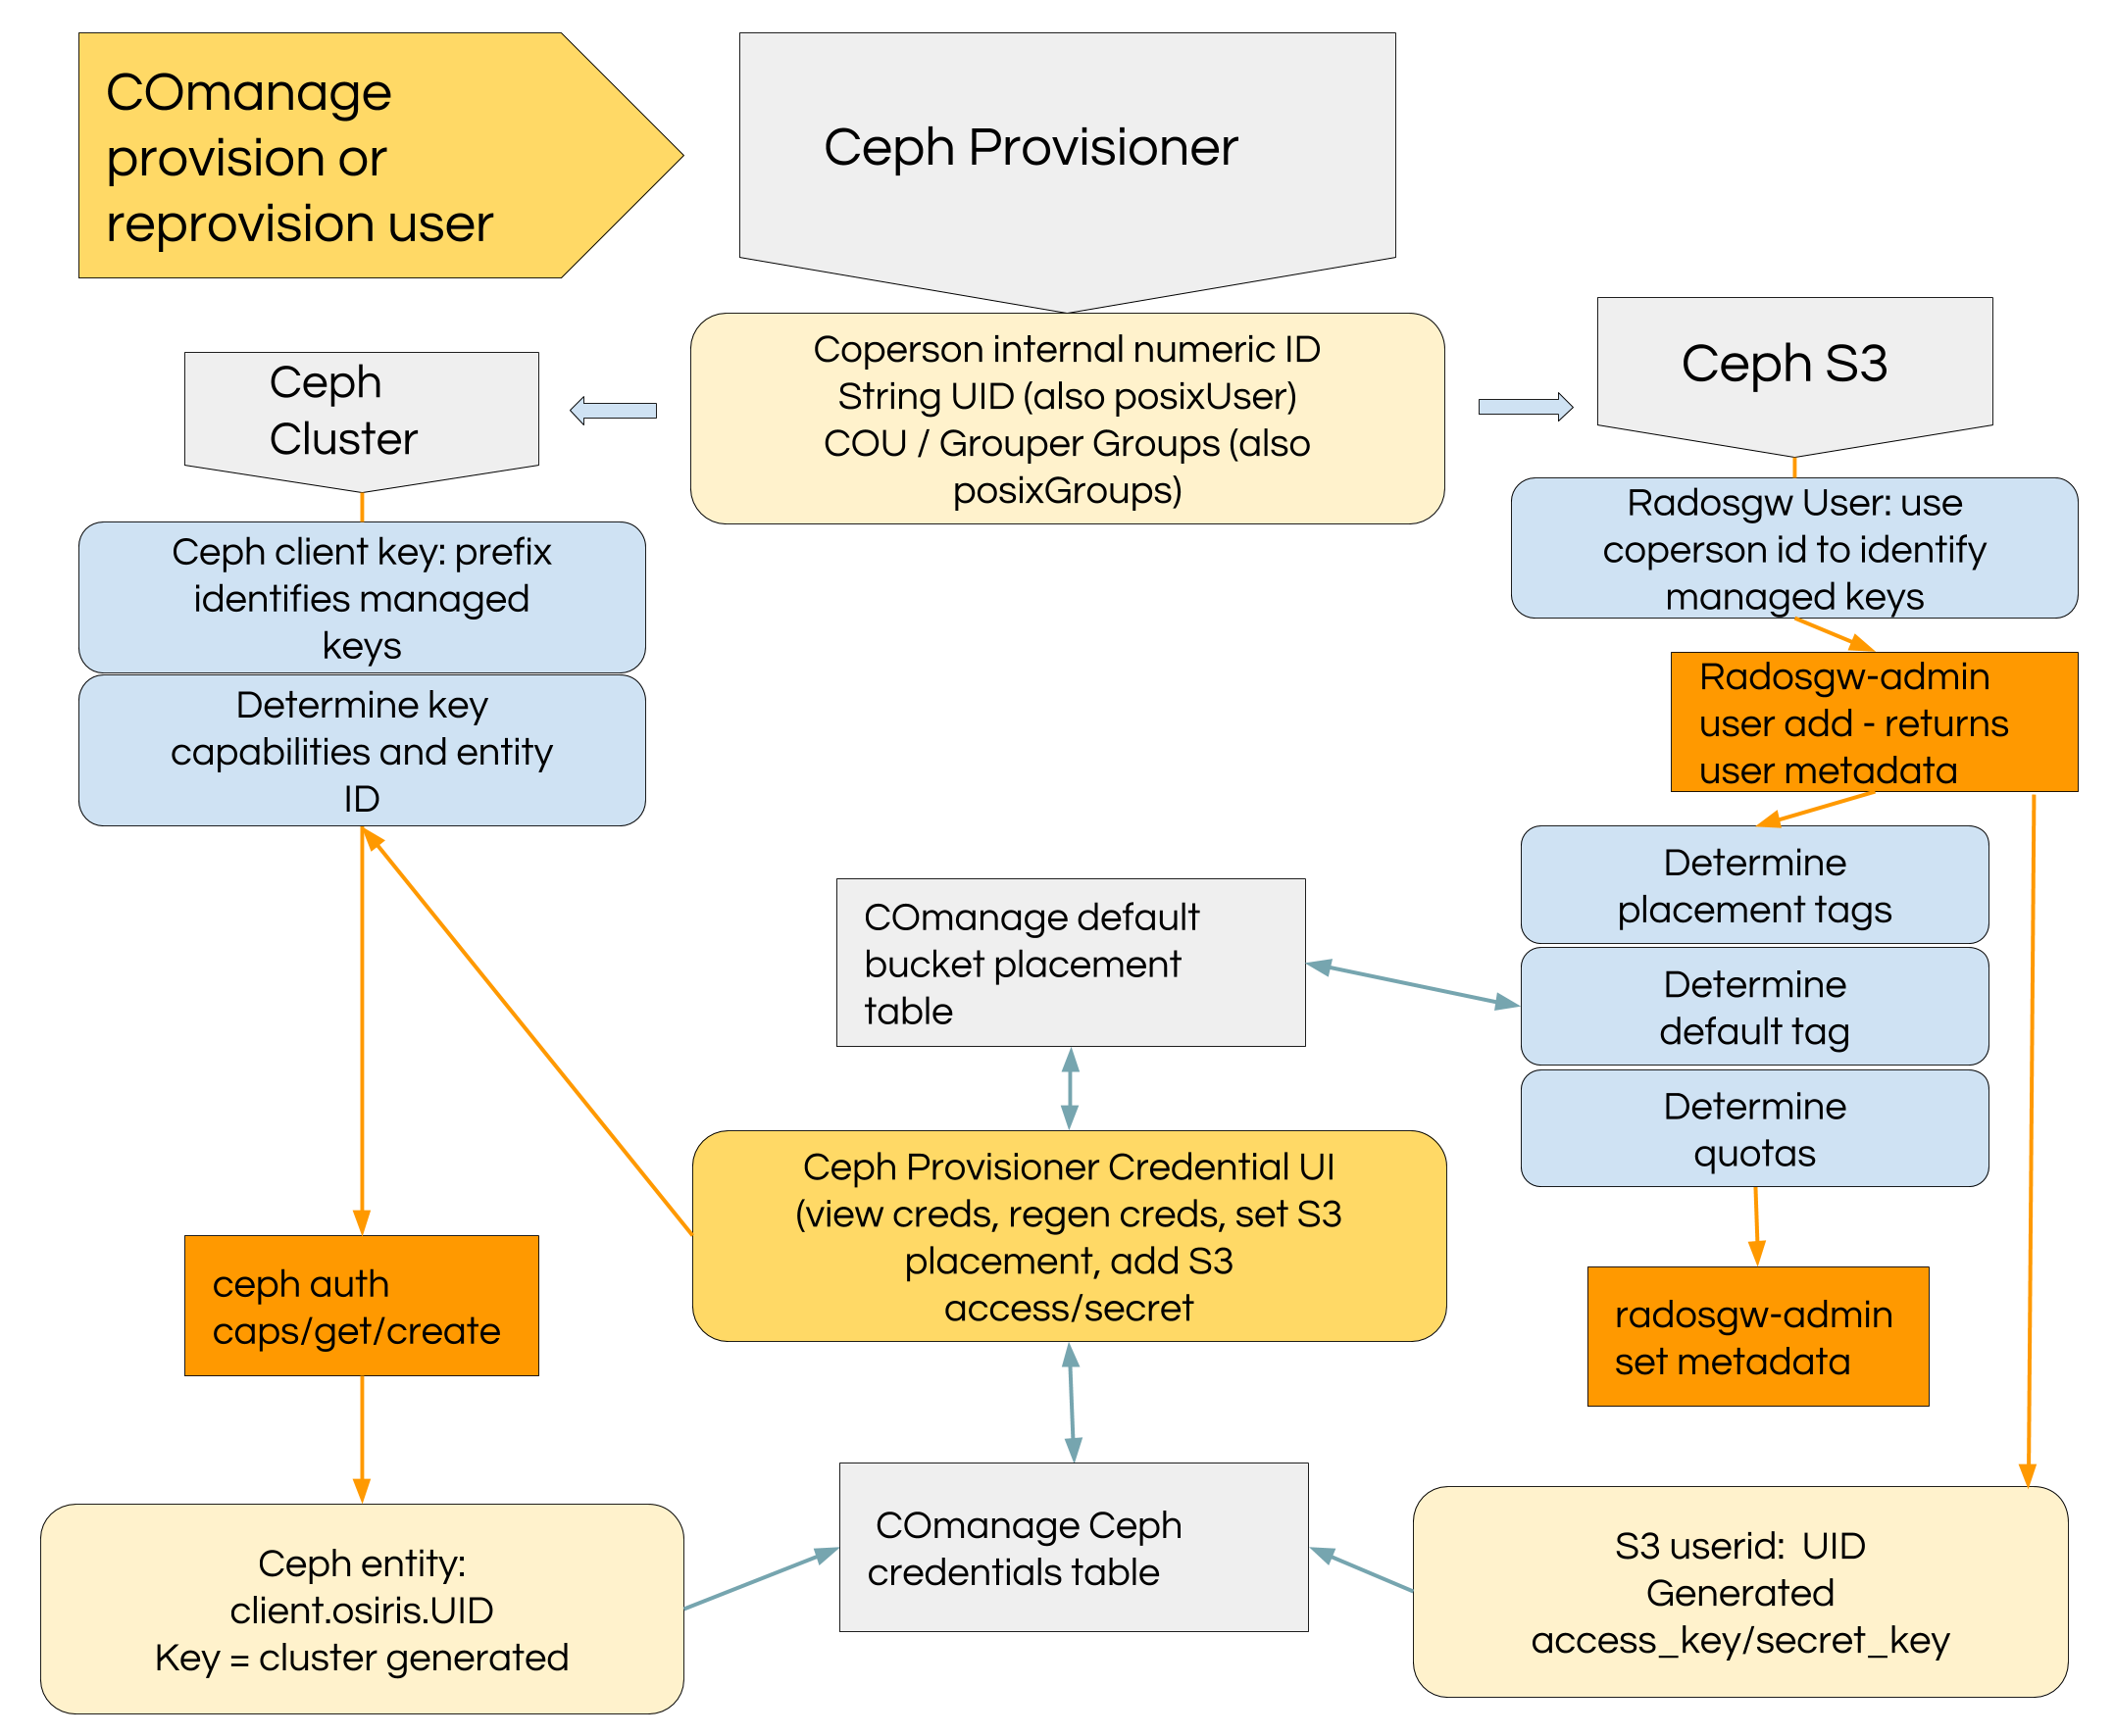 COmanage Ceph User Provisioning